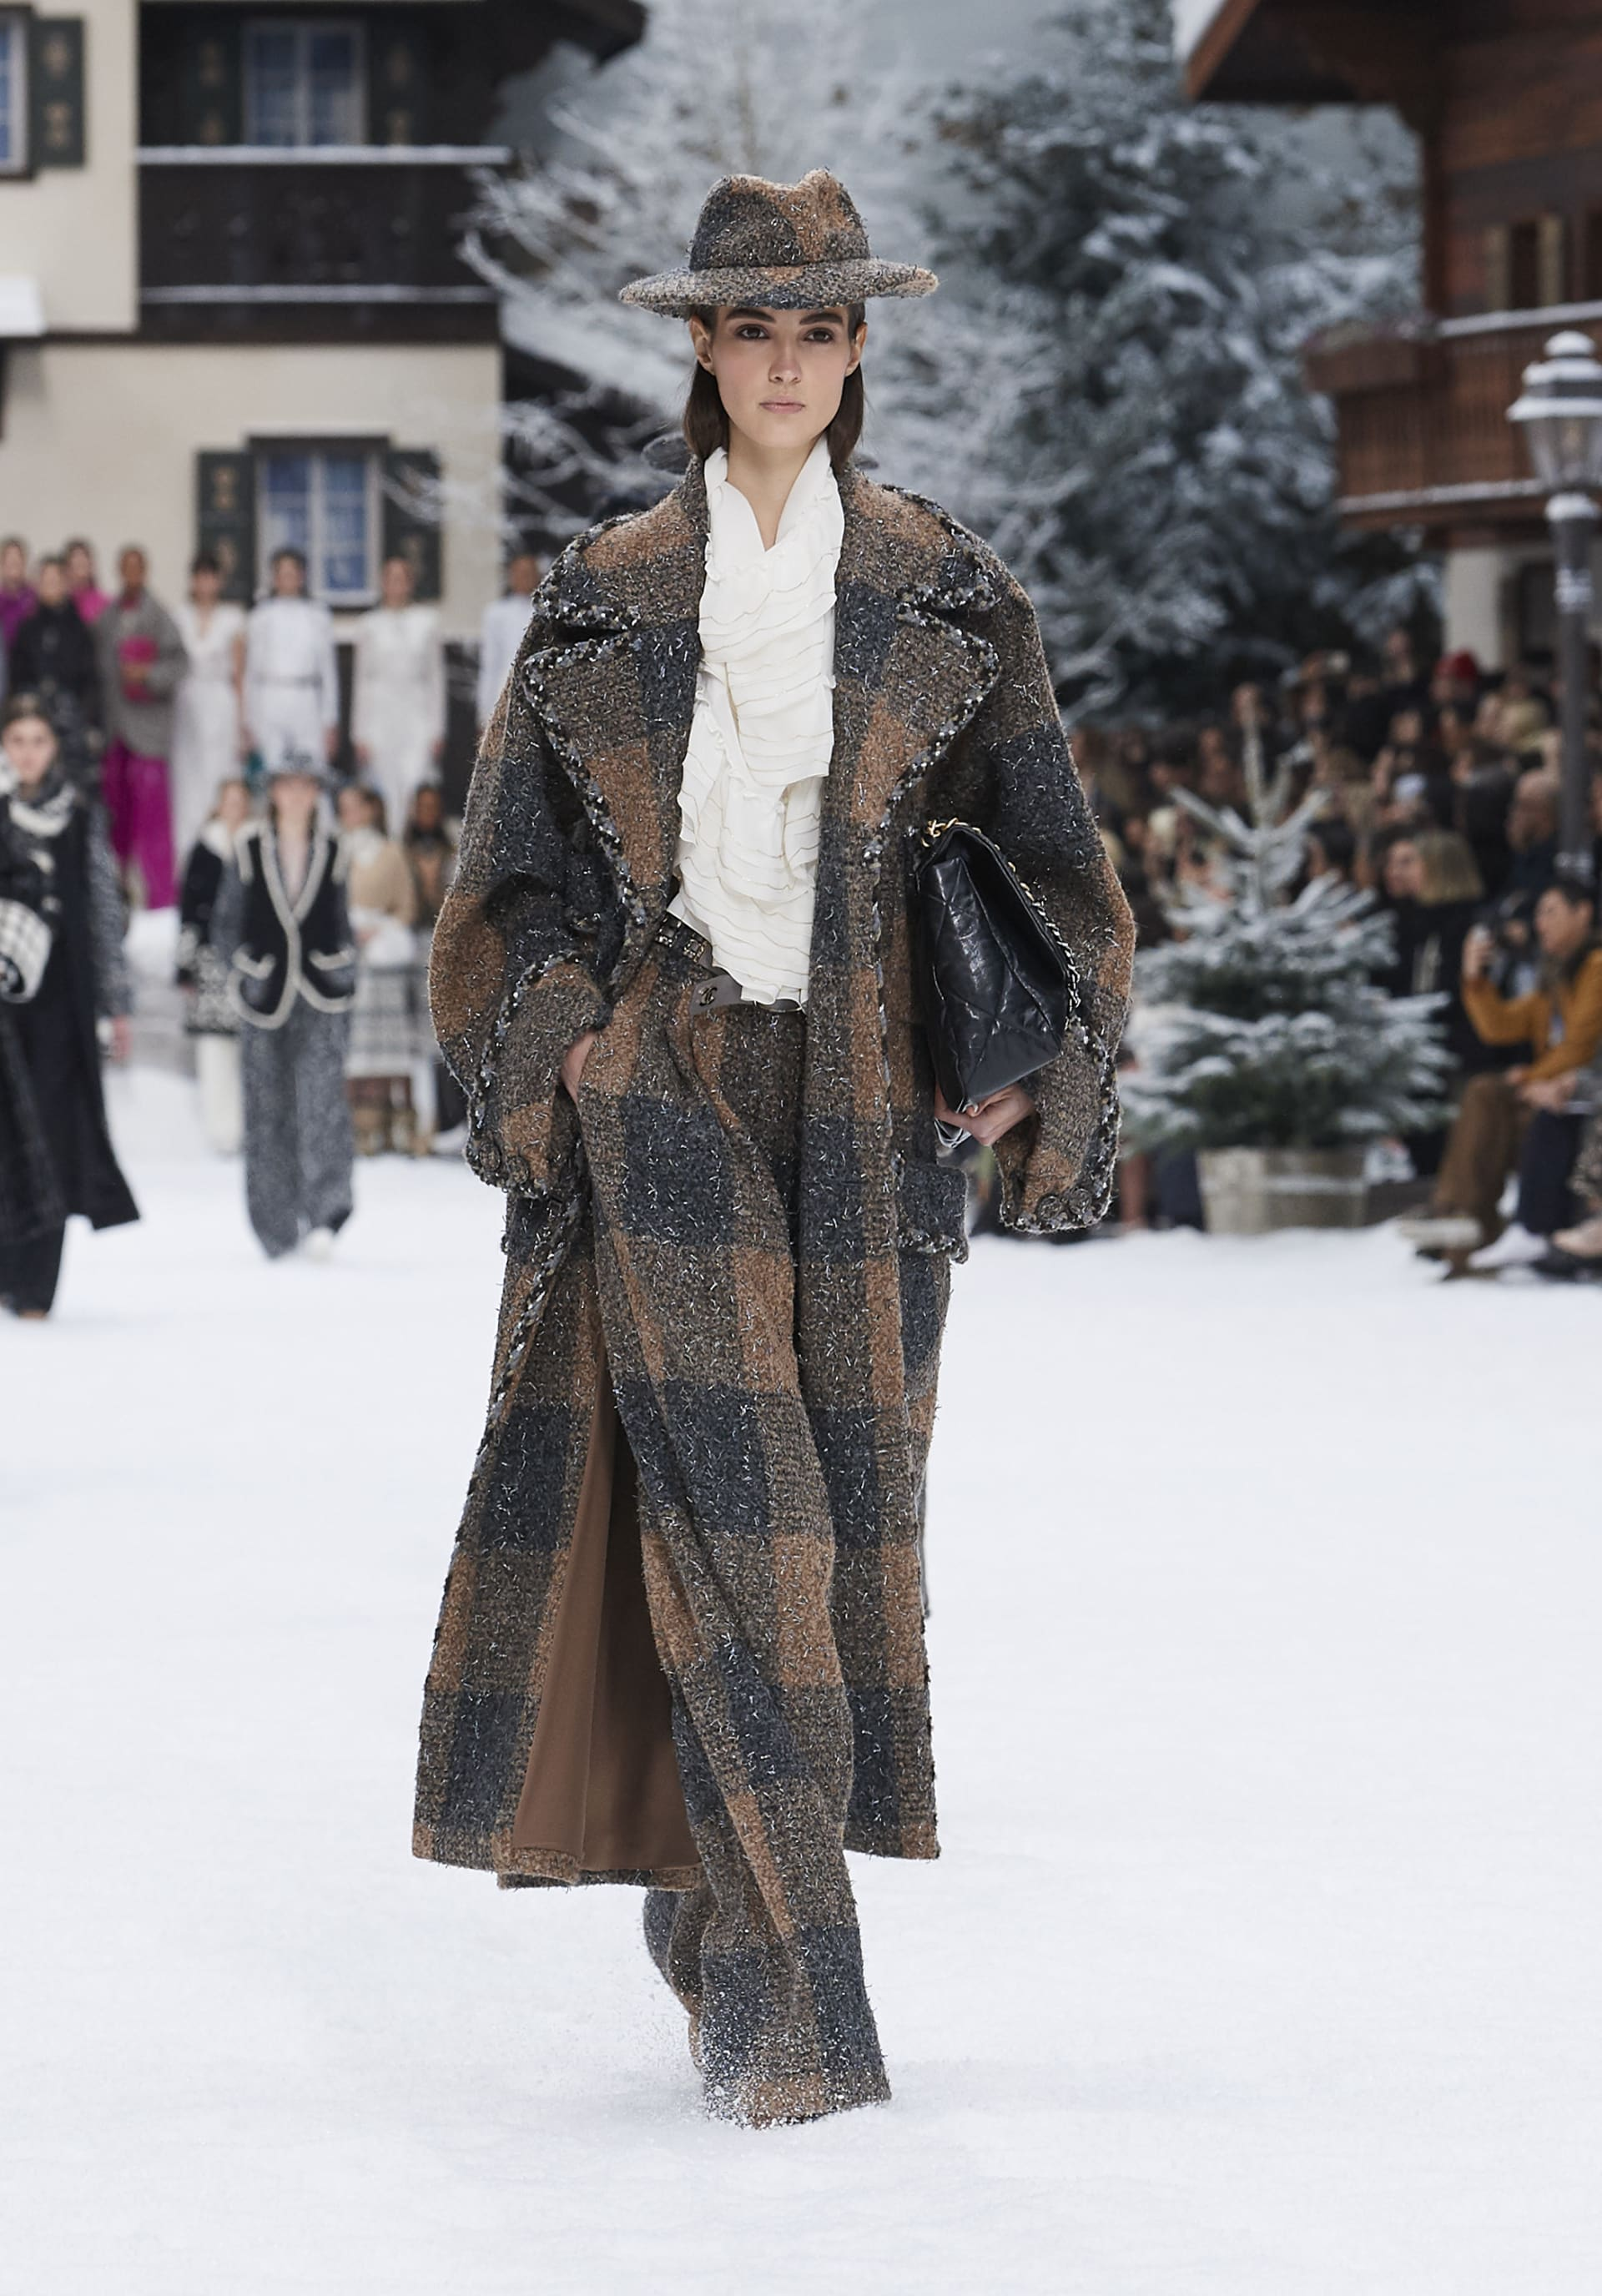 View 1 - Look 4 - Fall-Winter 2019/20